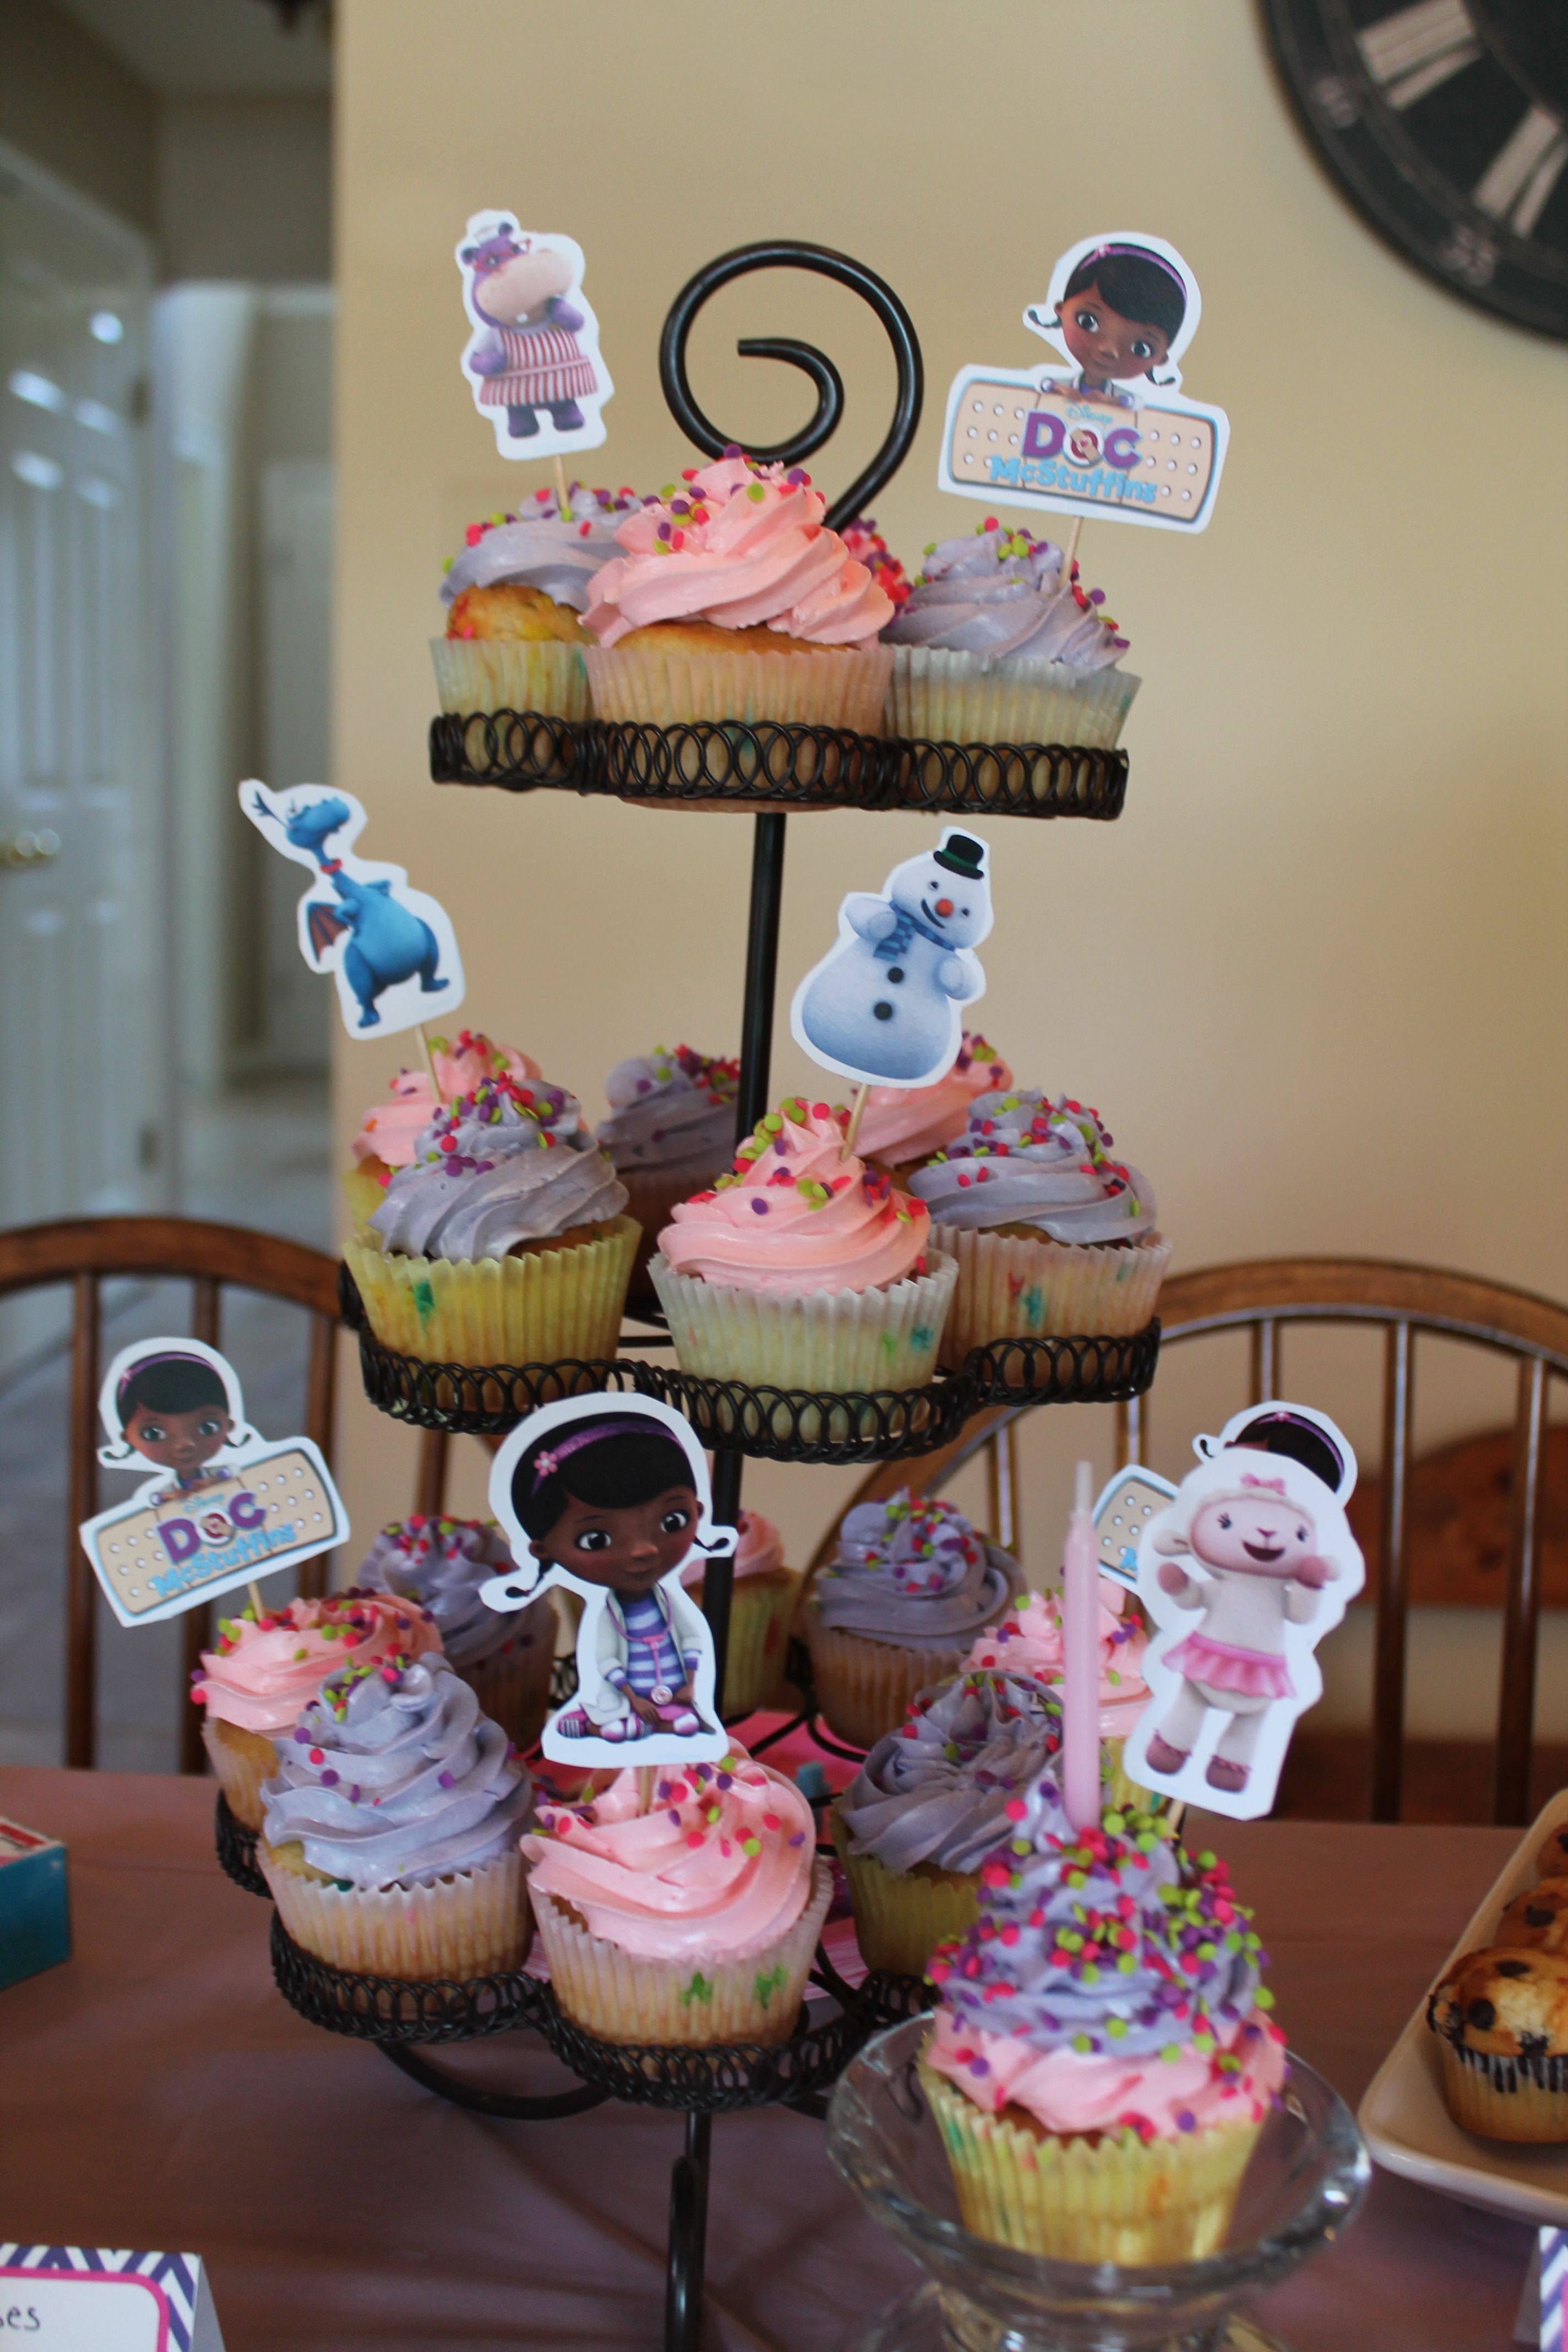 Doc mcstuffins bandages doc mcstuffins party ideas on pinterest doc - Doc Mcstuffins Cupcakes In Pink And Purple Frosting With Toppers